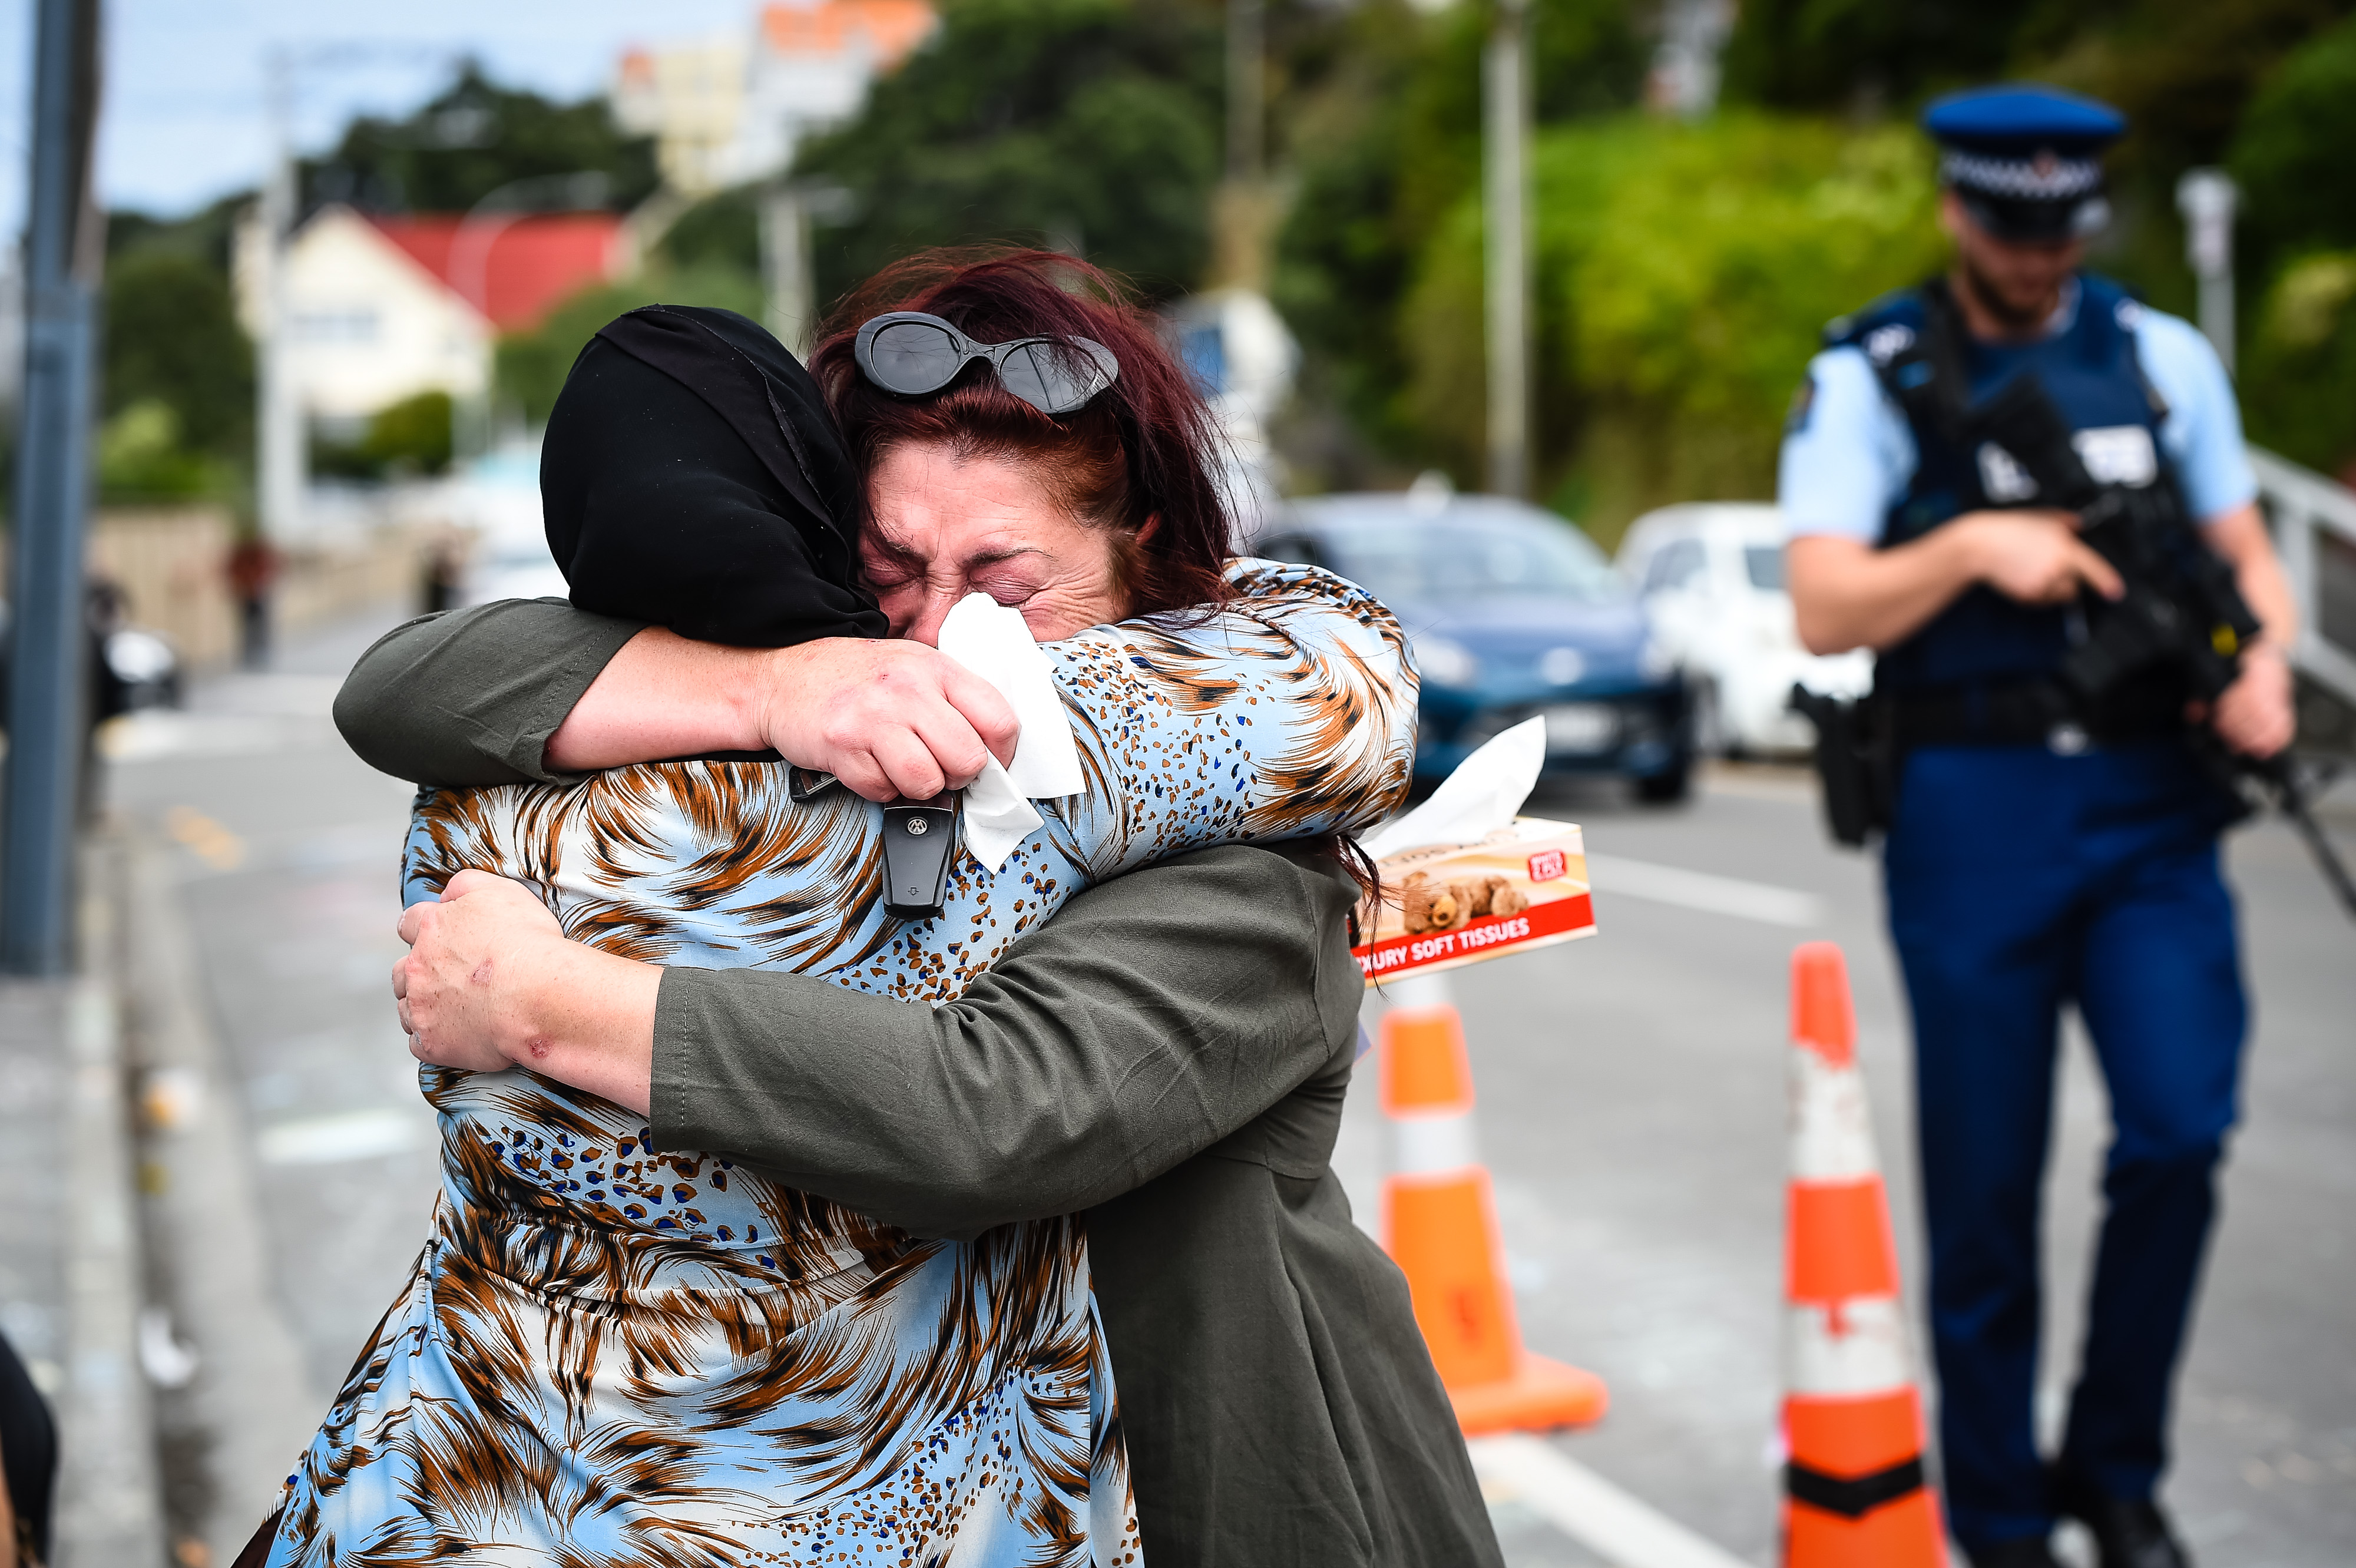 People embrace at the Kilbirnie Mosque on March 17, 2019 in Wellington, New Zealand. 50 people are confirmed dead and 36 are injured still in hospital following shooting attacks on two mosques in Christchurch on Friday, 15 March. The attack is the worst mass shooting in New Zealand's history. (Getty Images)